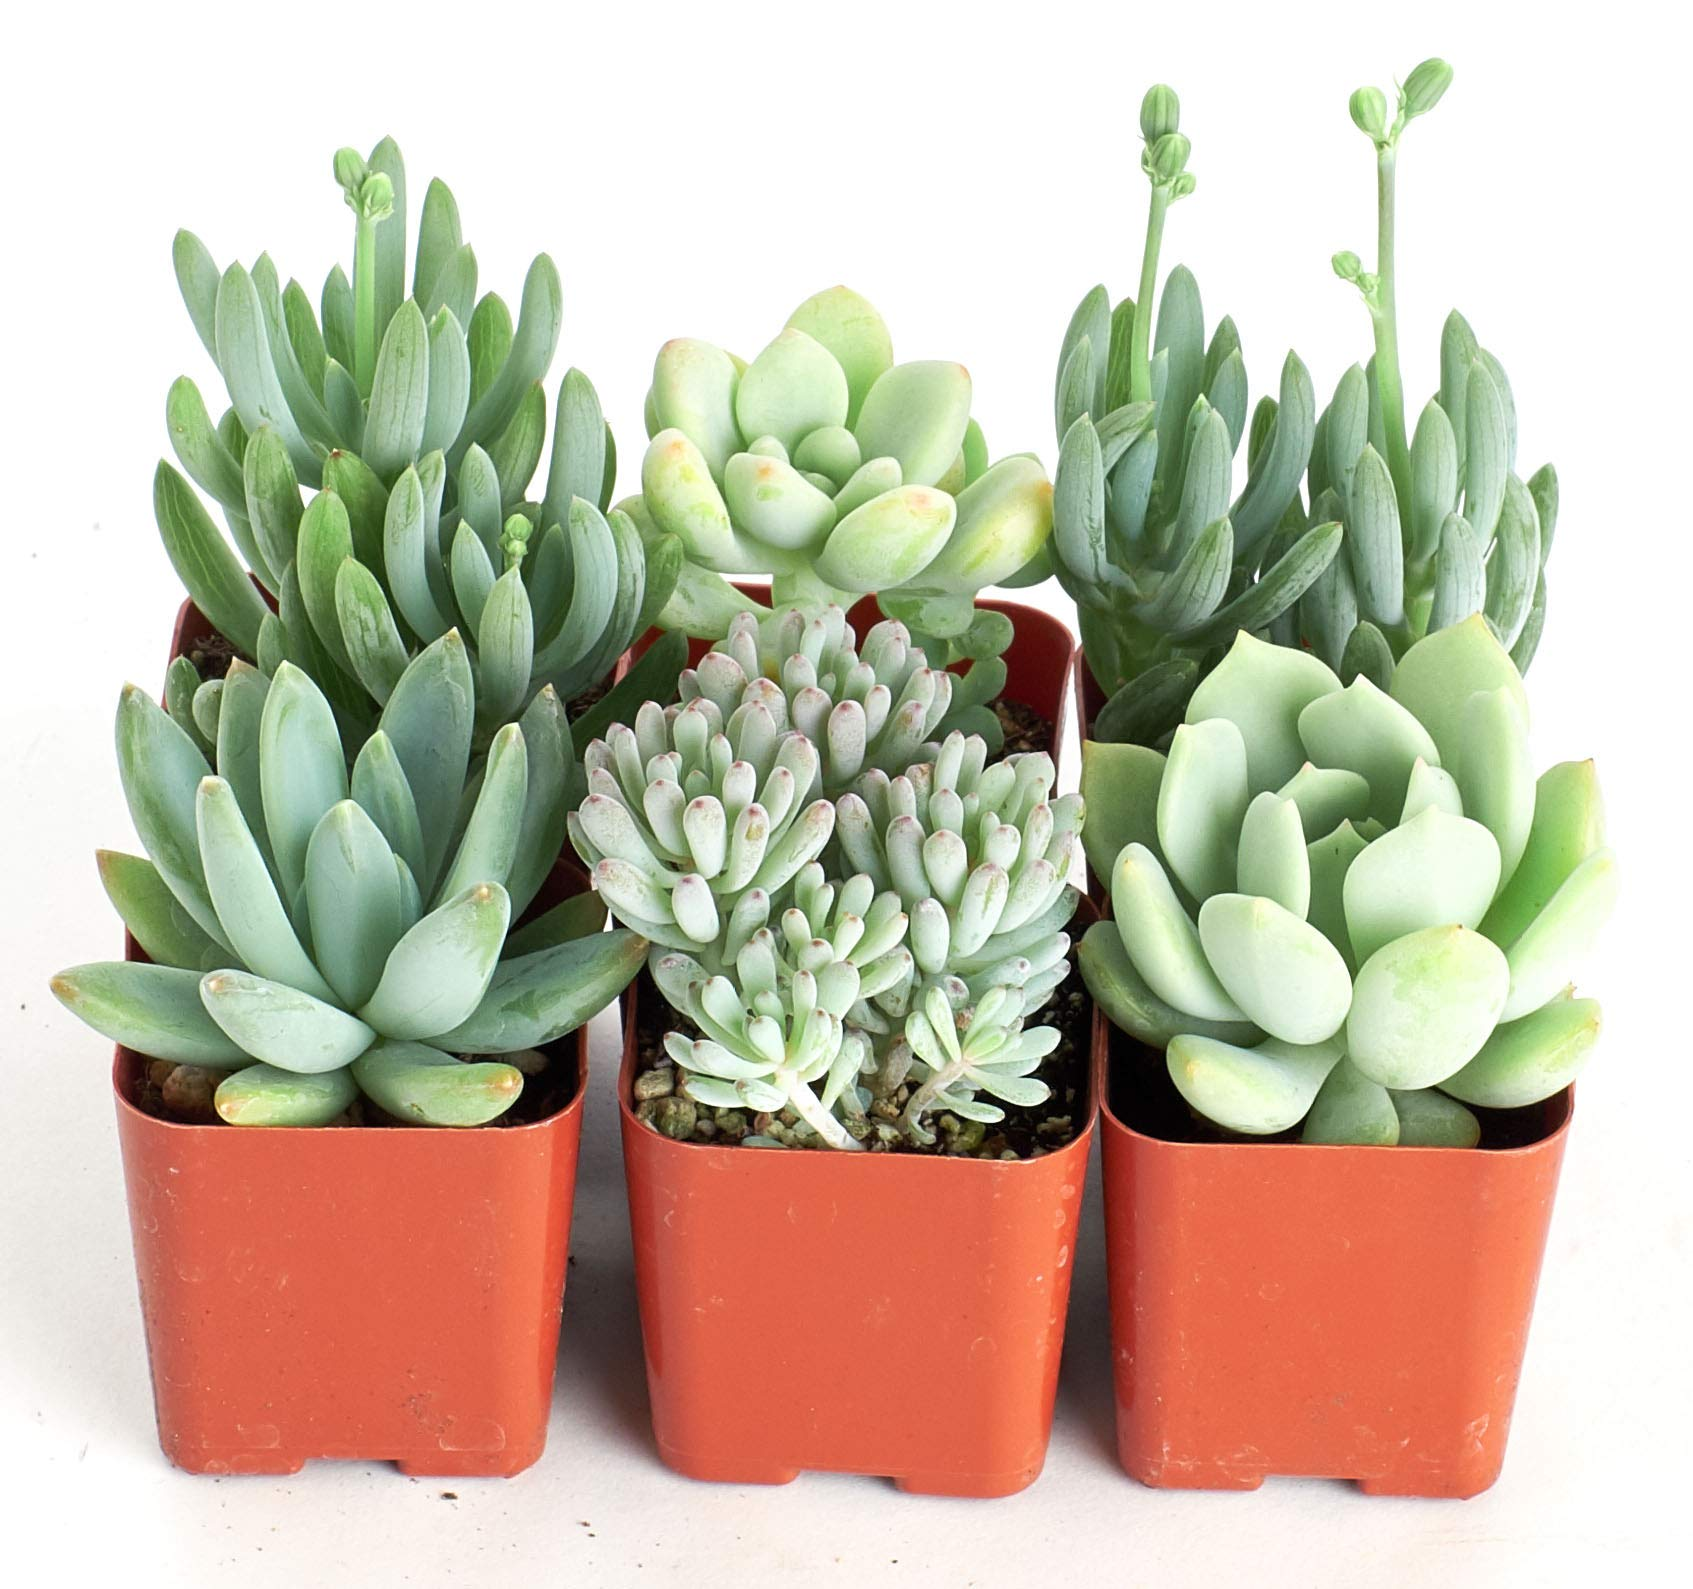 Shop Succulents   It's a Boy Blue Live Plants, Hand Selected Variety Pack of Mini Succulents     Collection of 6 in 2'' pots, 6